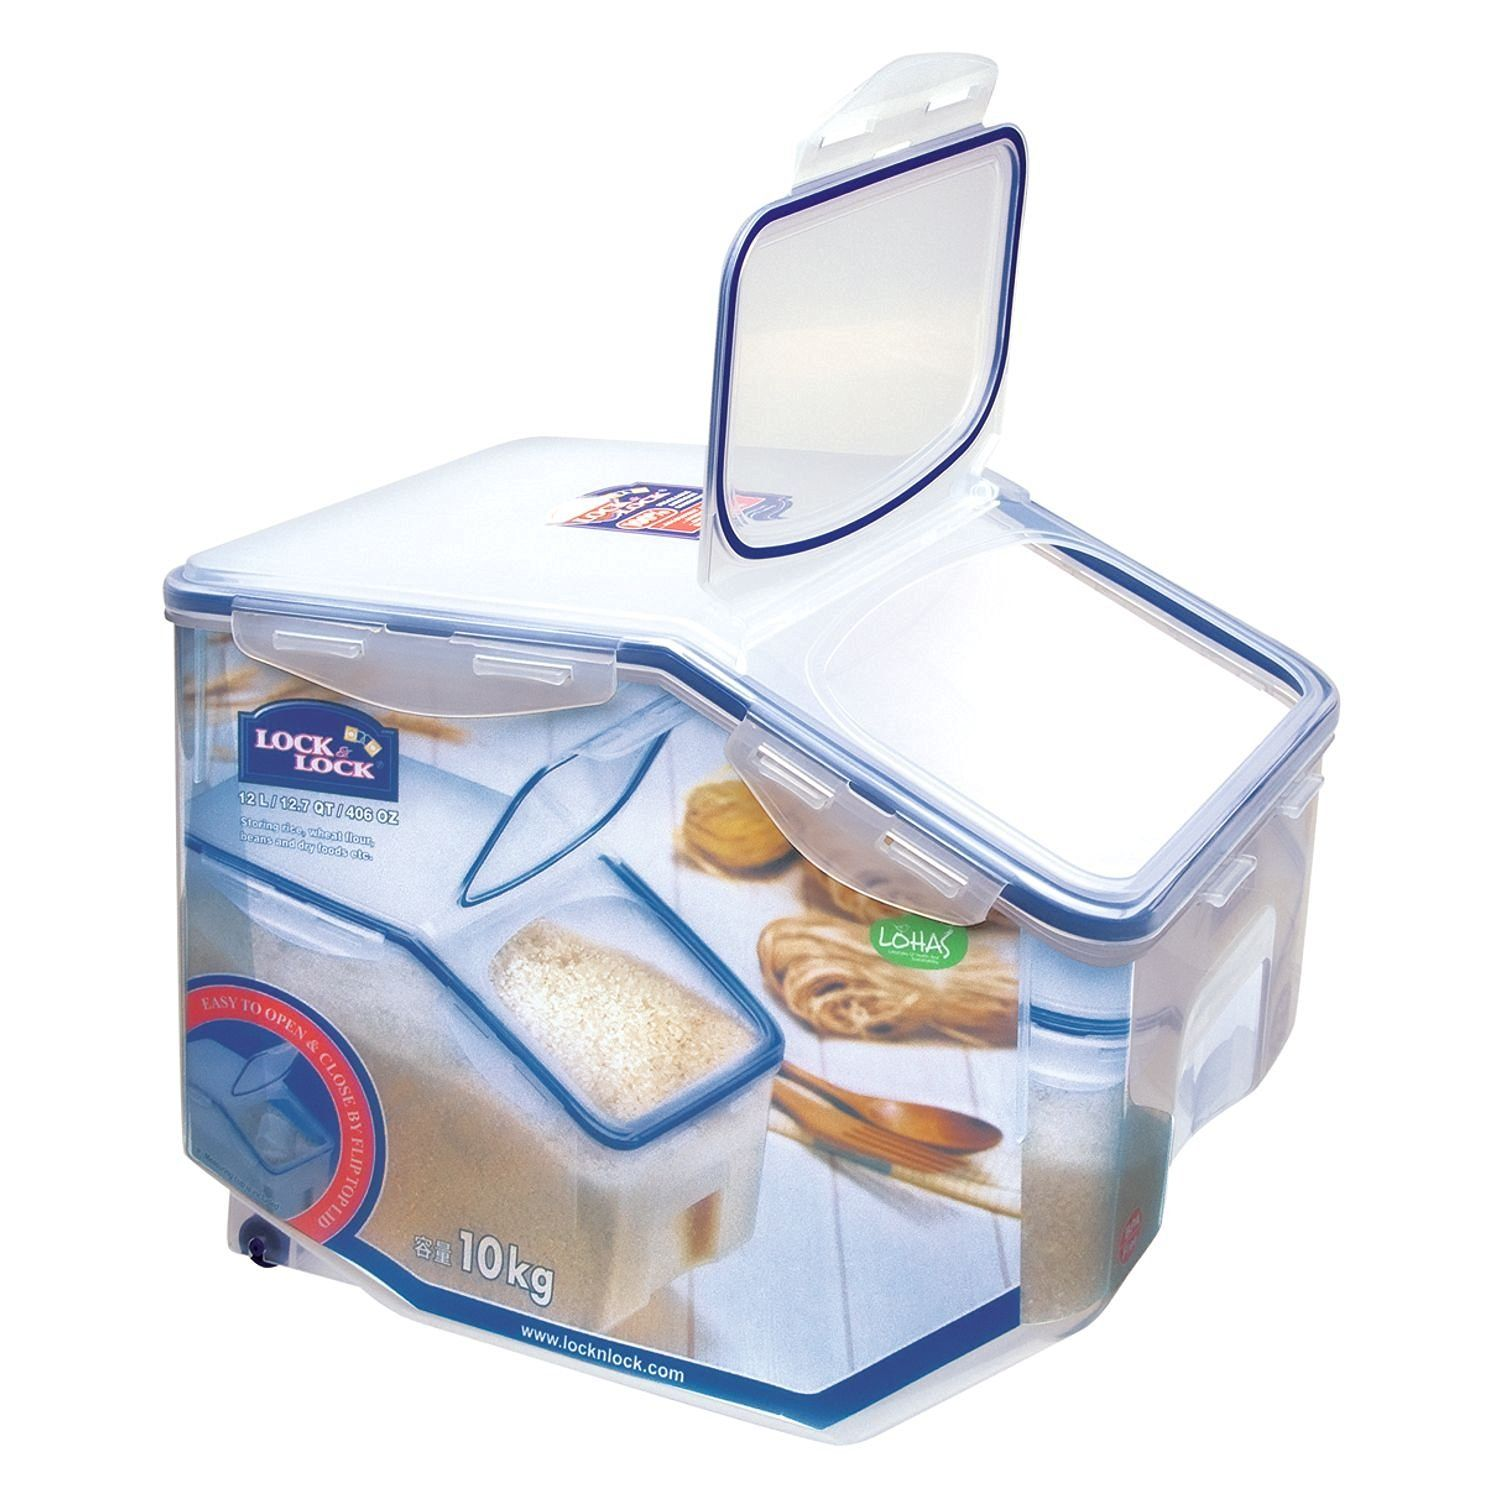 Lock & Lock Kitchen Caddy HPL510 Multi-Use Food Container Box 12.0 L ...